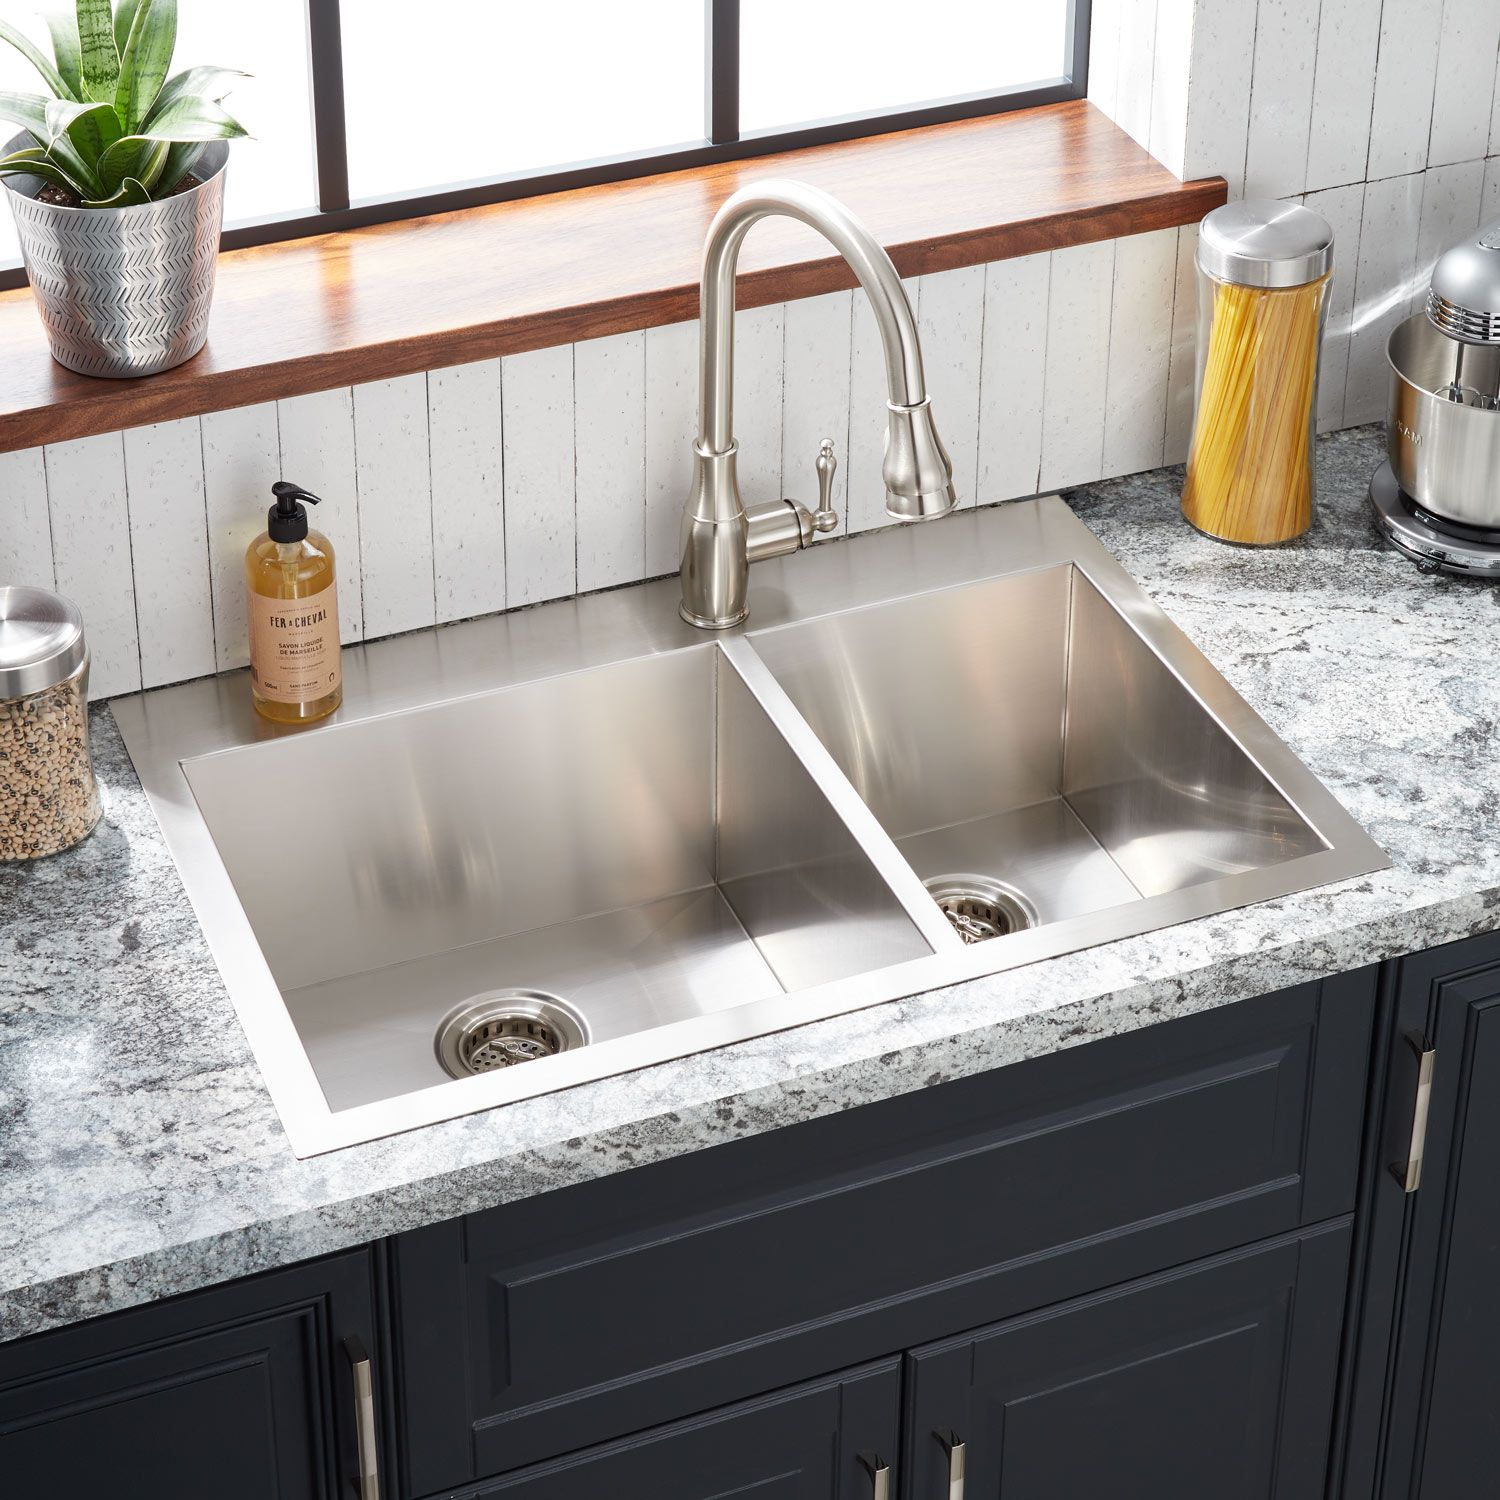 Kitchen Updates And Lighting Image By Allison Roop In 2020 Undermount Stainless Steel Sink Stainless Steel Farmhouse Sink